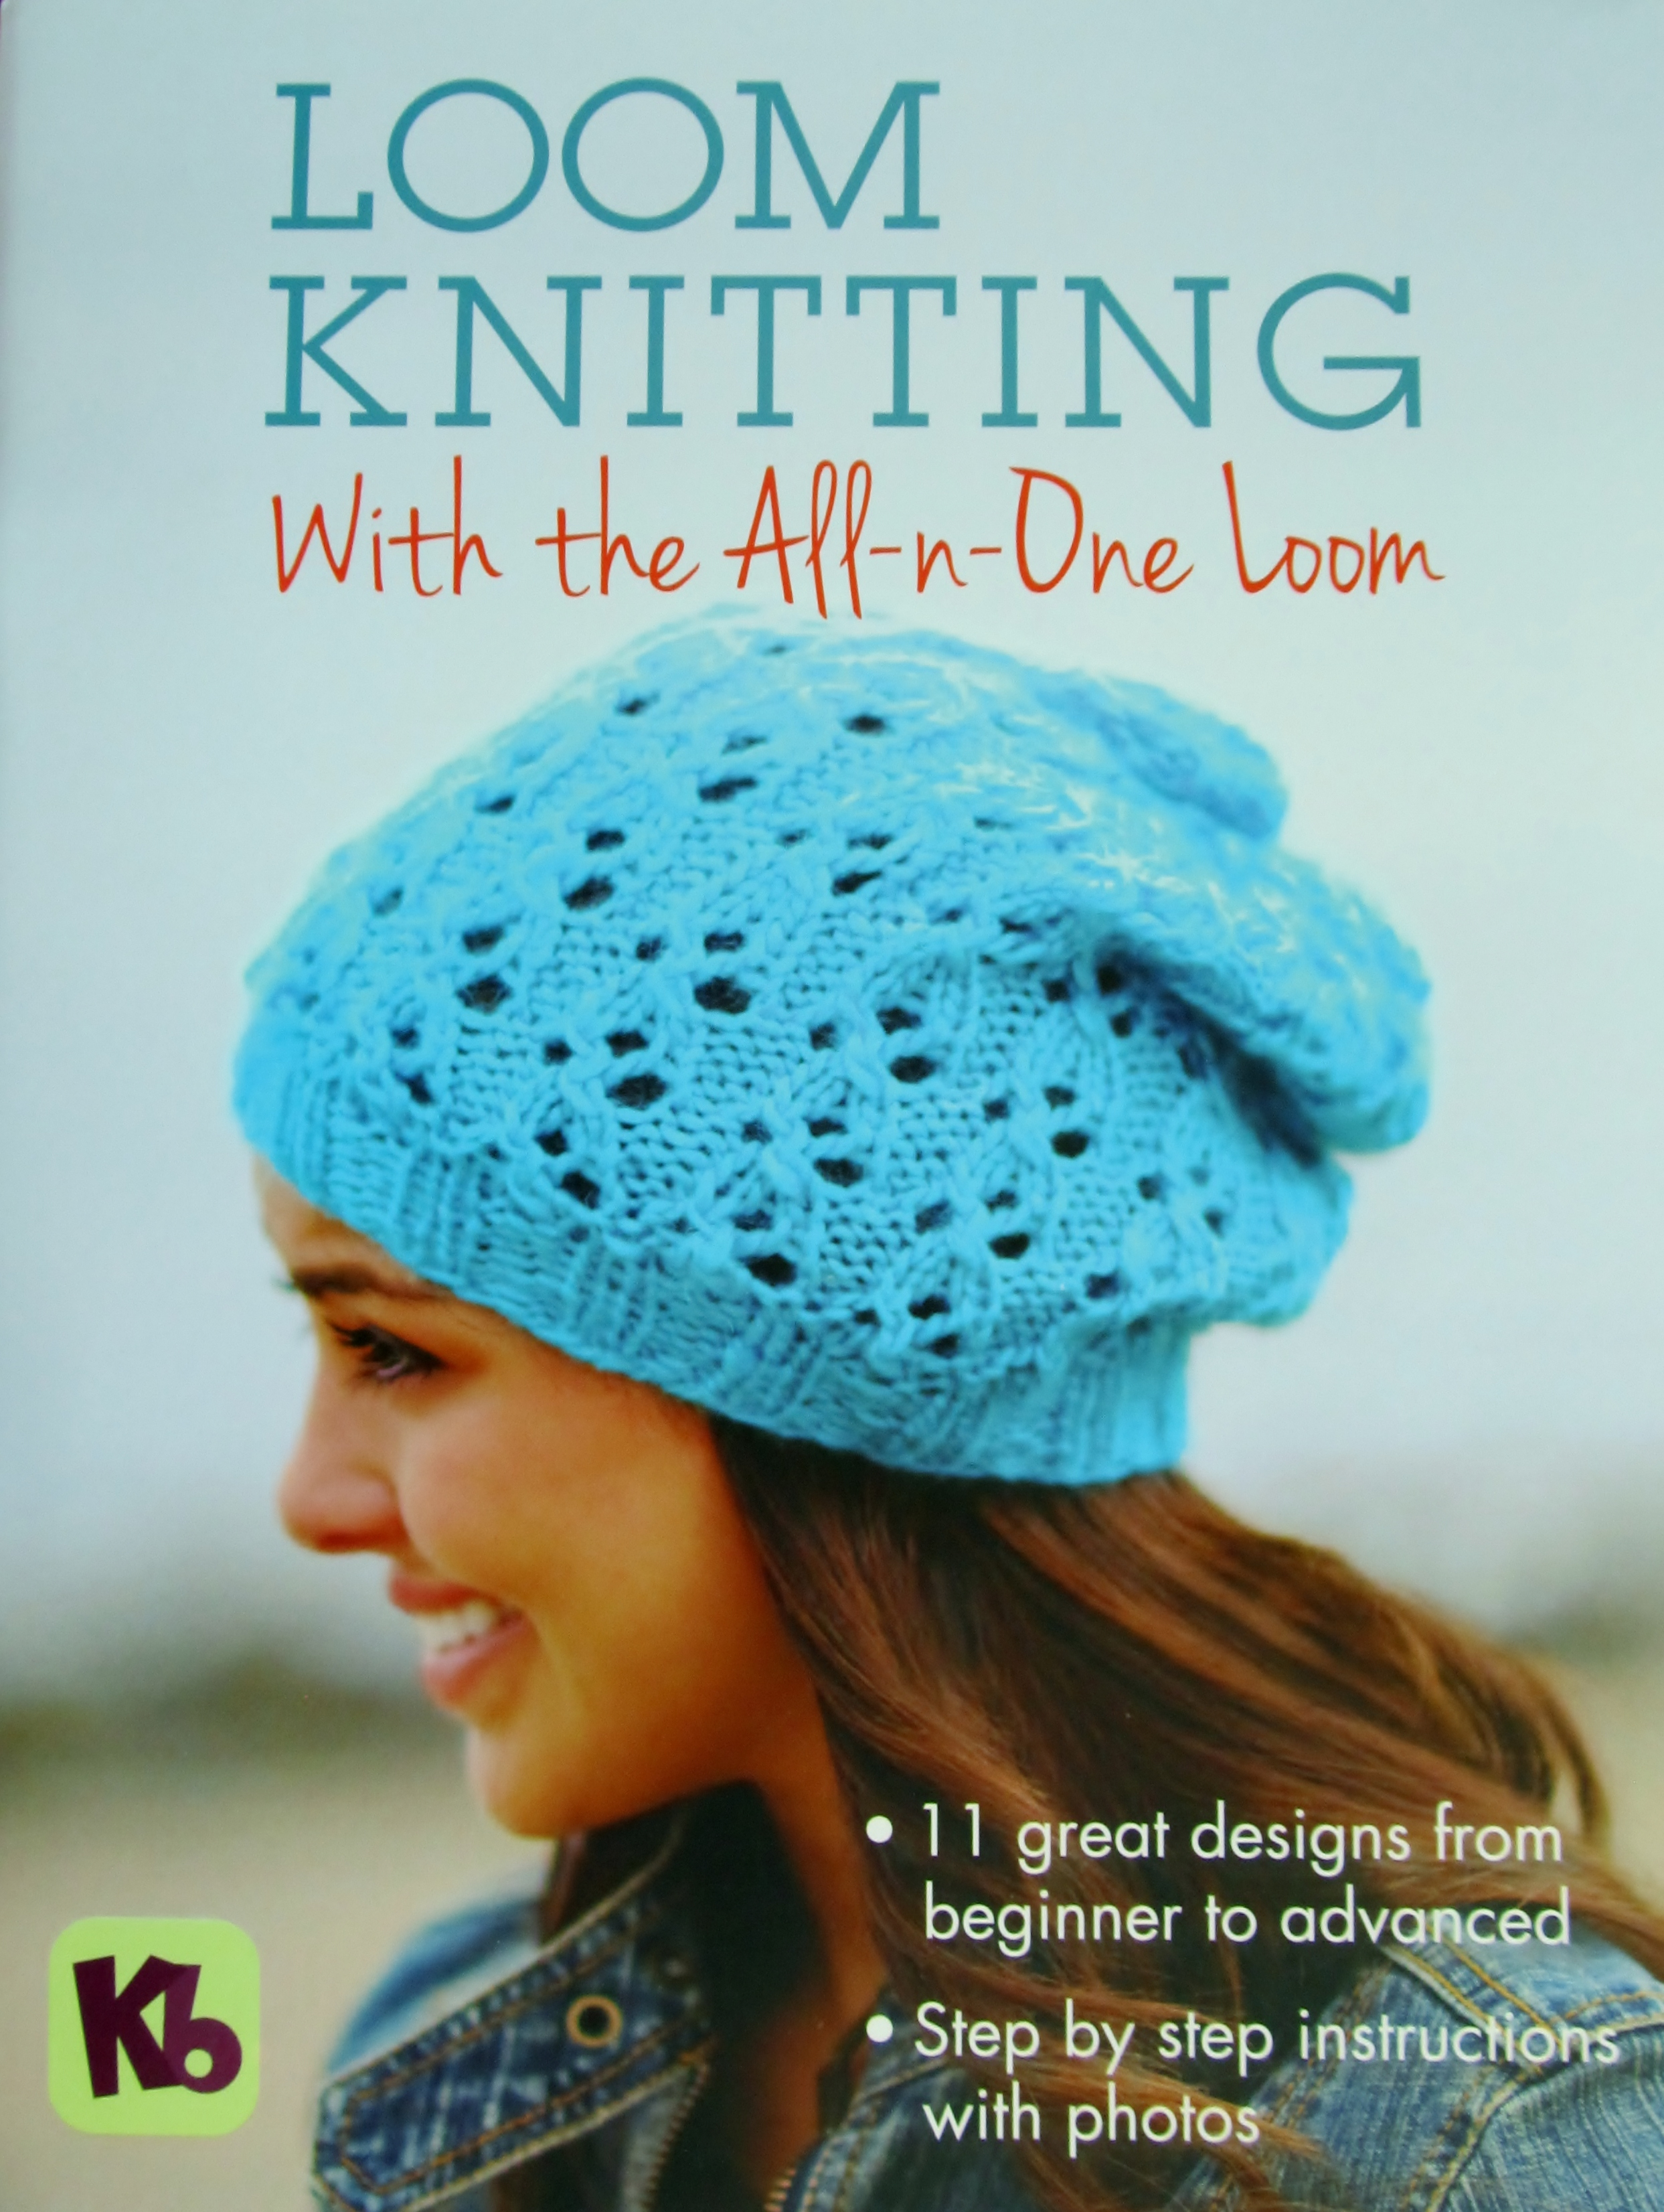 Knitting Loom Ideas : Loom knitting with the all n one book guppygirl